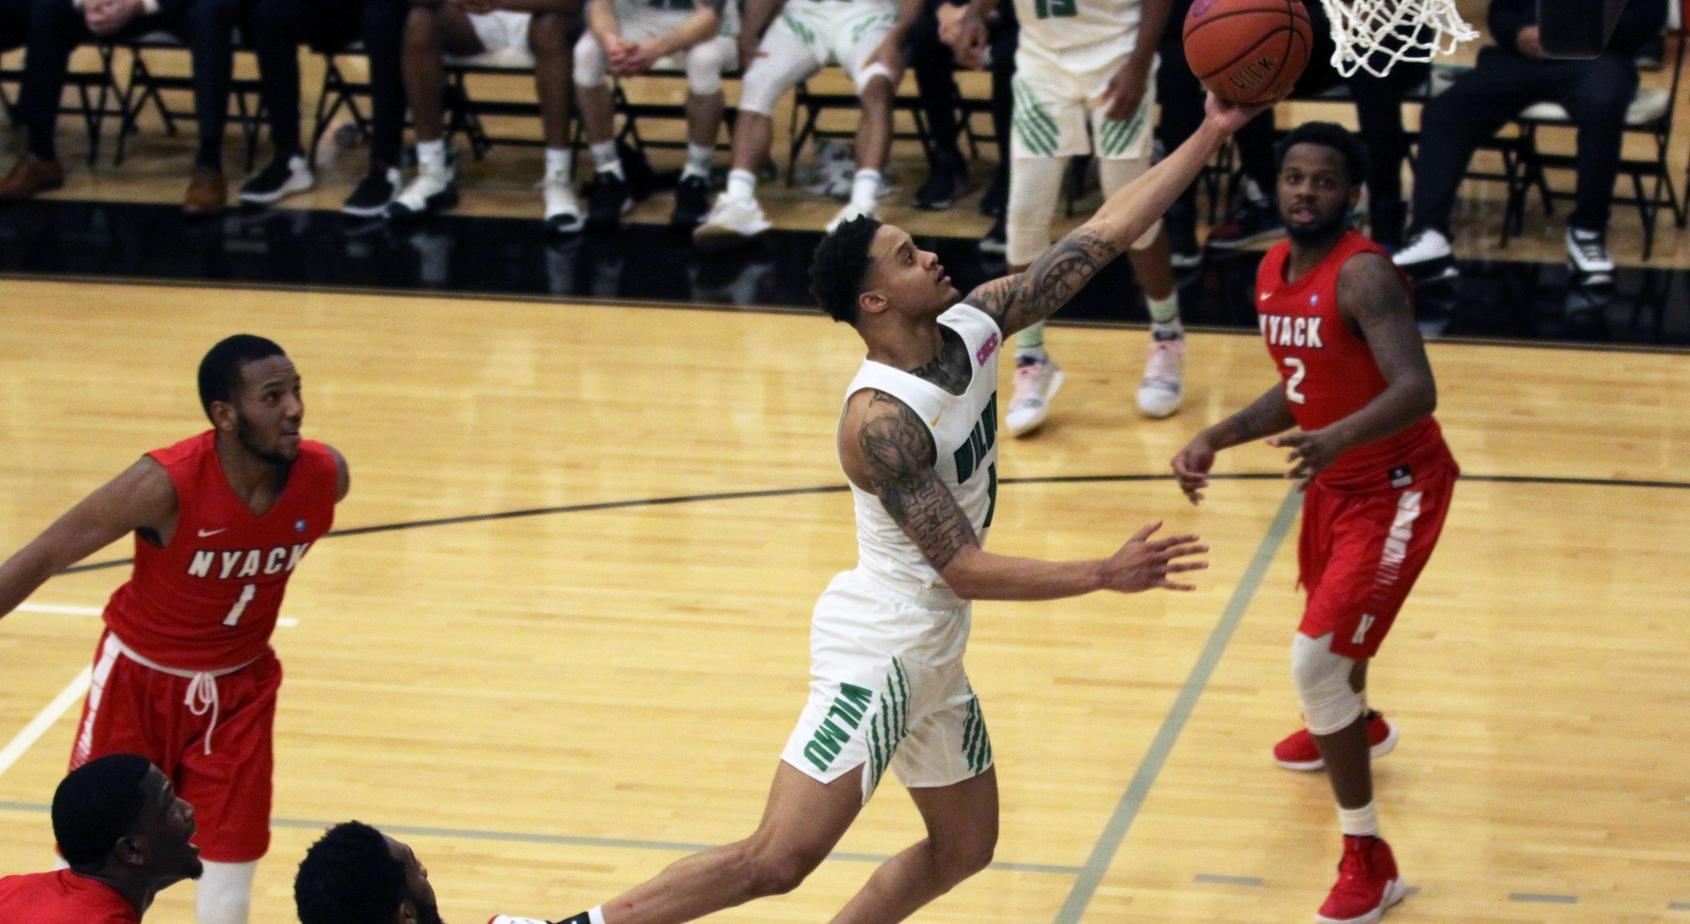 Copyright 2019; Wilmington University. All rights reserved. Photo of Jermaine Head who contributed a double-double with 19 points and 10 rebounds against Nyack. Photo by Dan Lauletta. January 5, 2019 vs. Nyack.